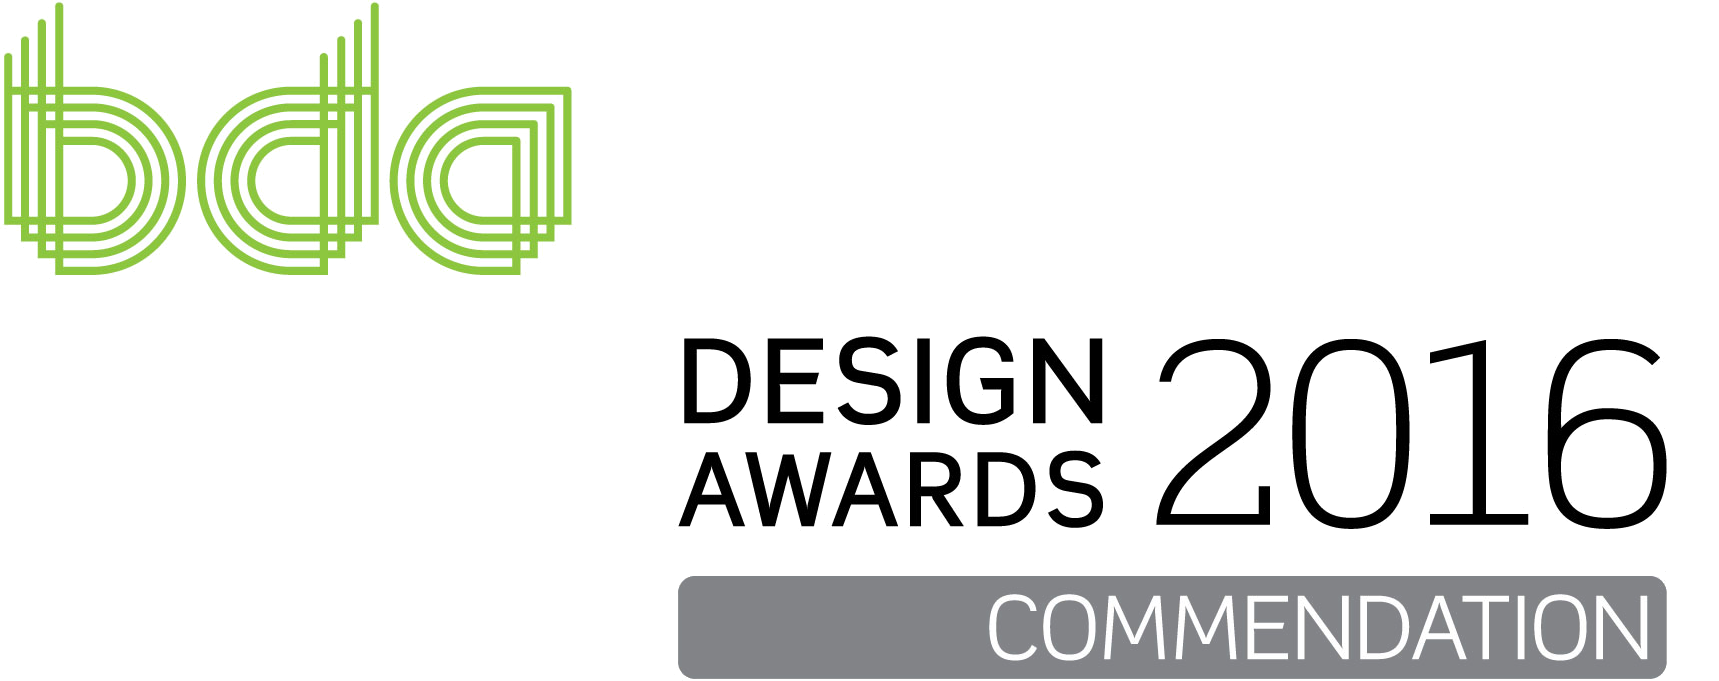 BDA Designs Awards Logo Commendation